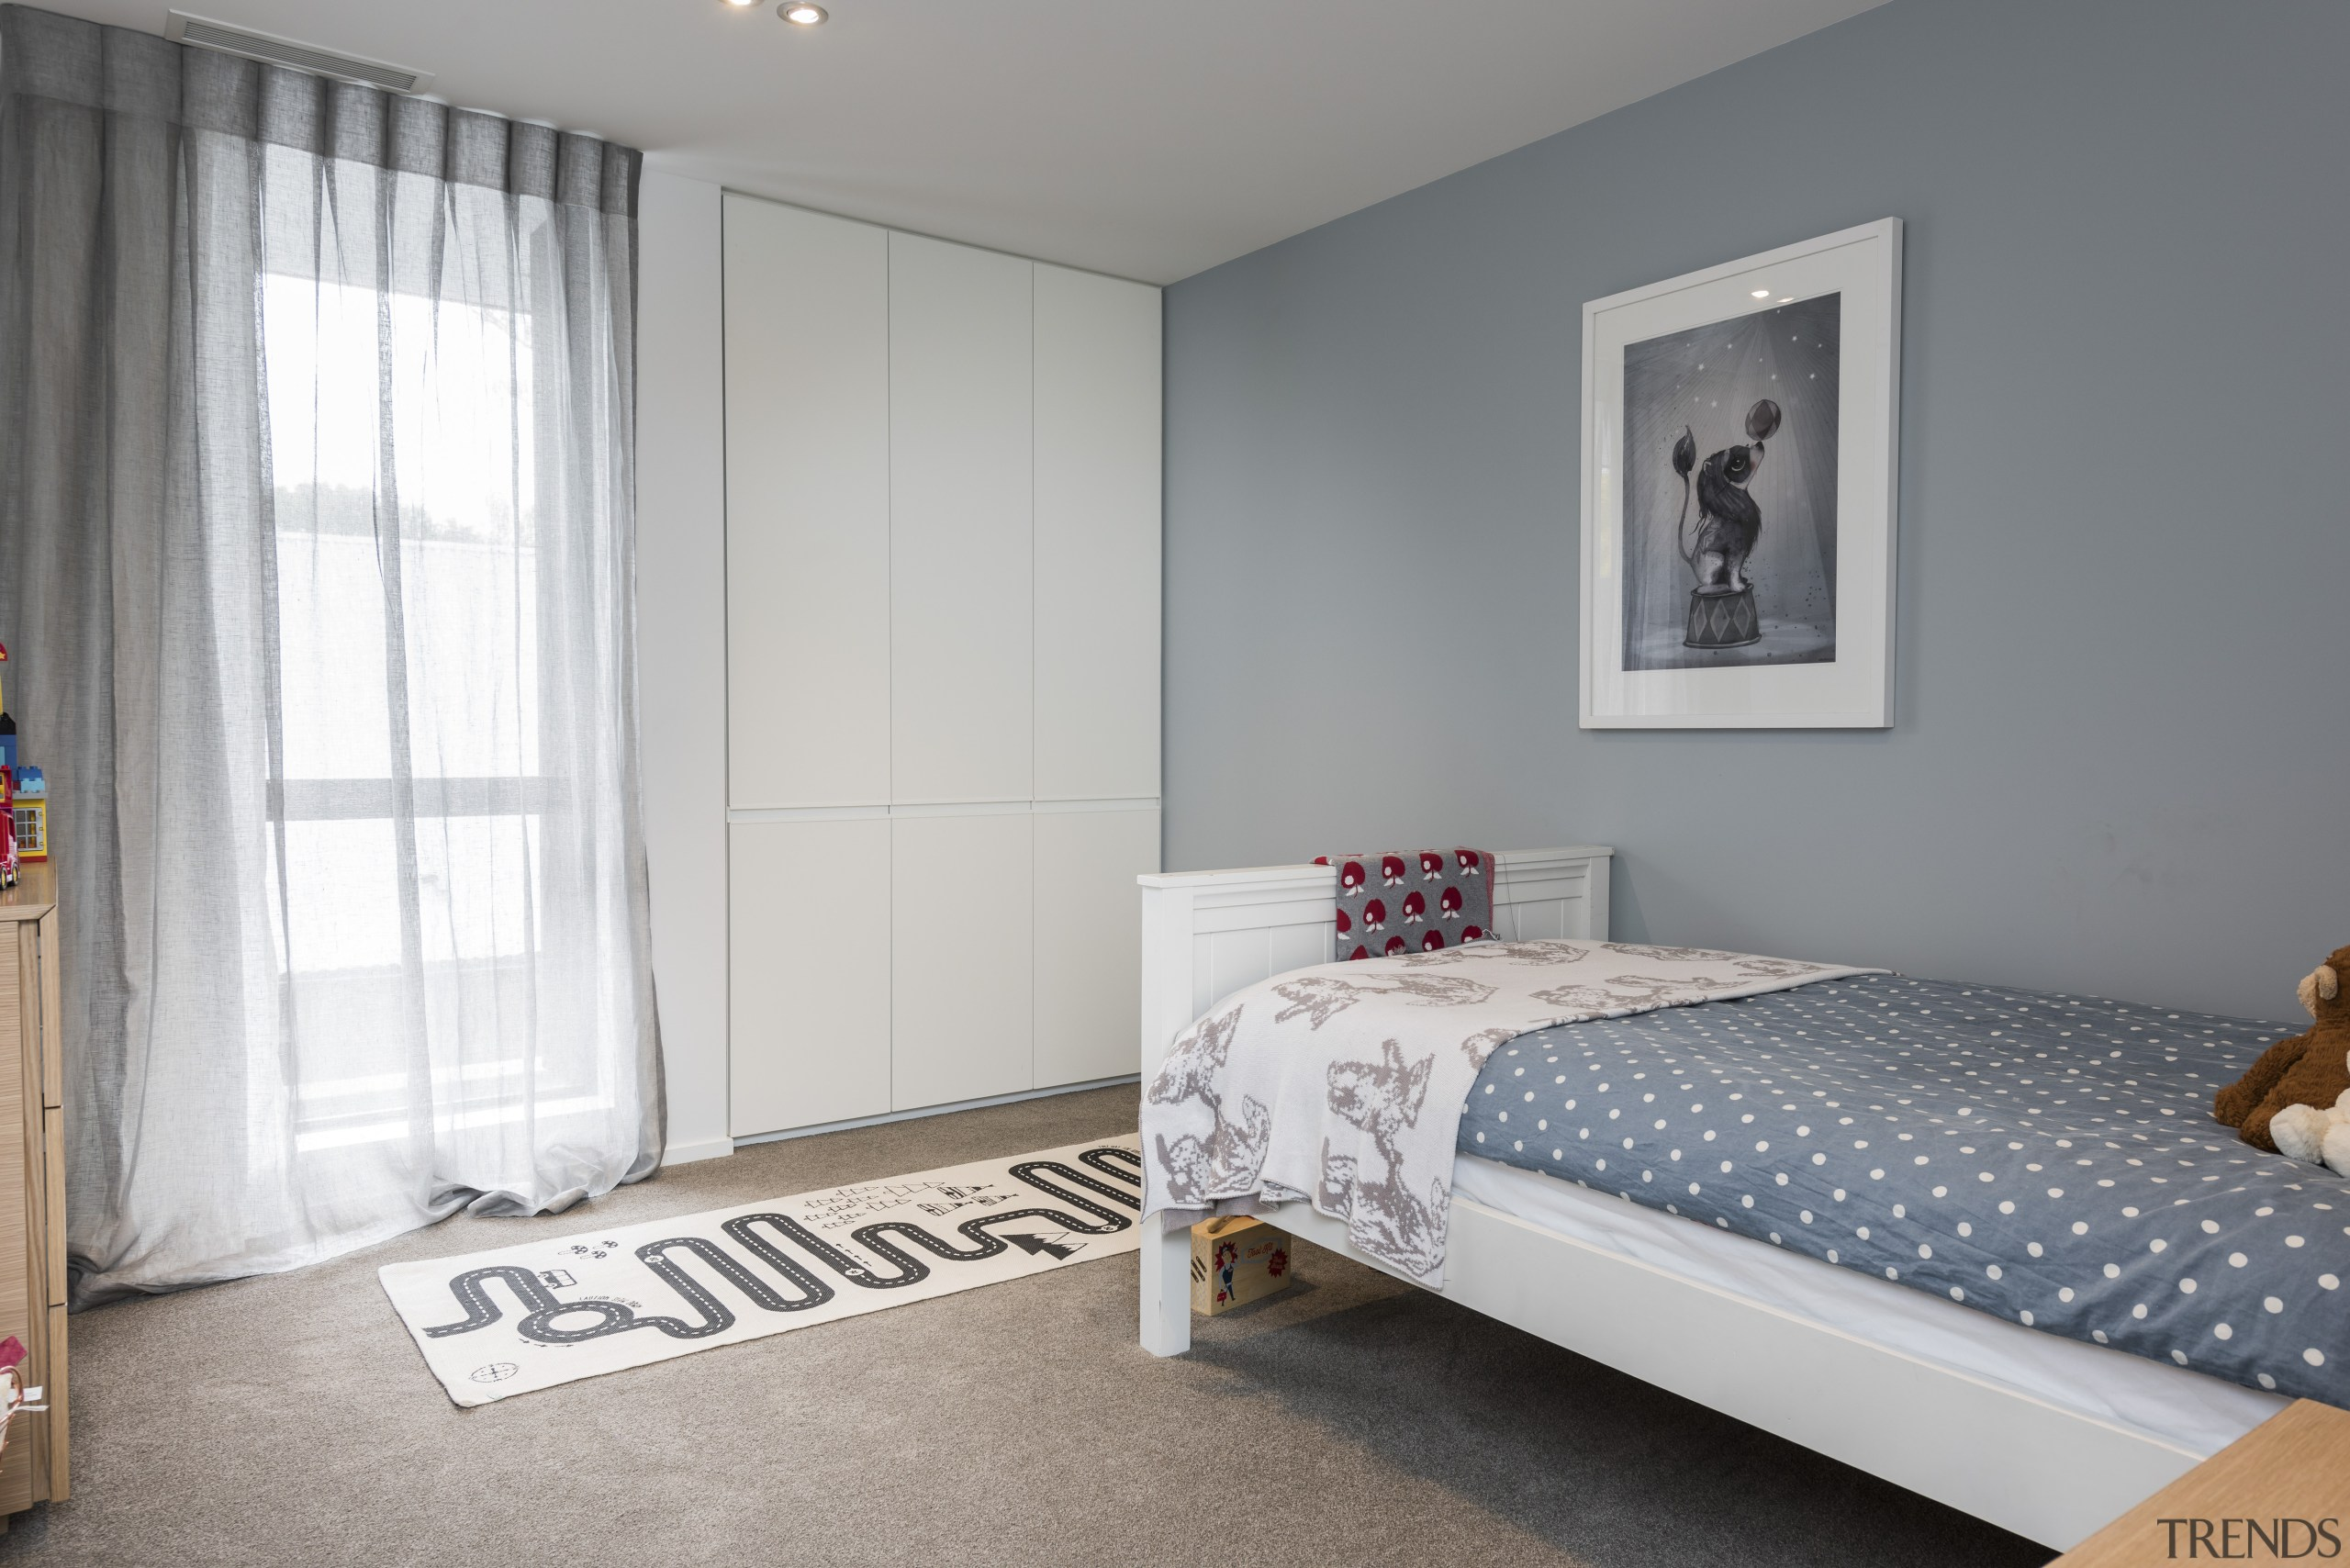 For the interior design of this home by bed, bedroom, home, house, interior design, Resene, Half Powder Blue, paint